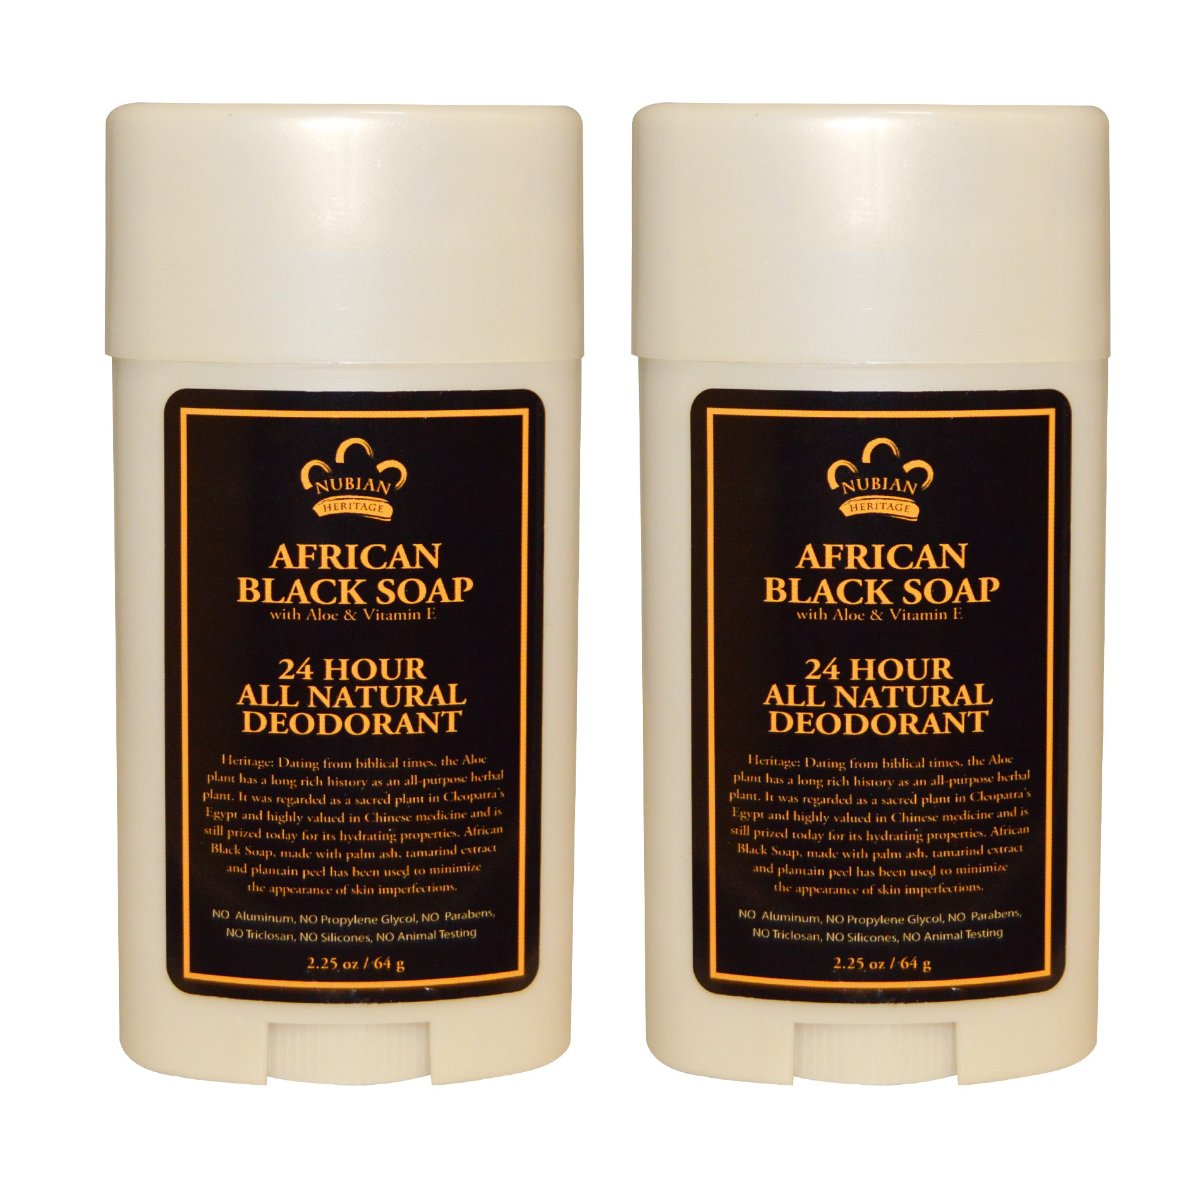 Nubian Heritage 24 Hour All Natural Deodorant African Black Soap (Pack of 2) with African Black Soap Extract, Shea Butter, Grapefruit Seed Extract, Vitamin E and Sandalwood Oil, 64 g